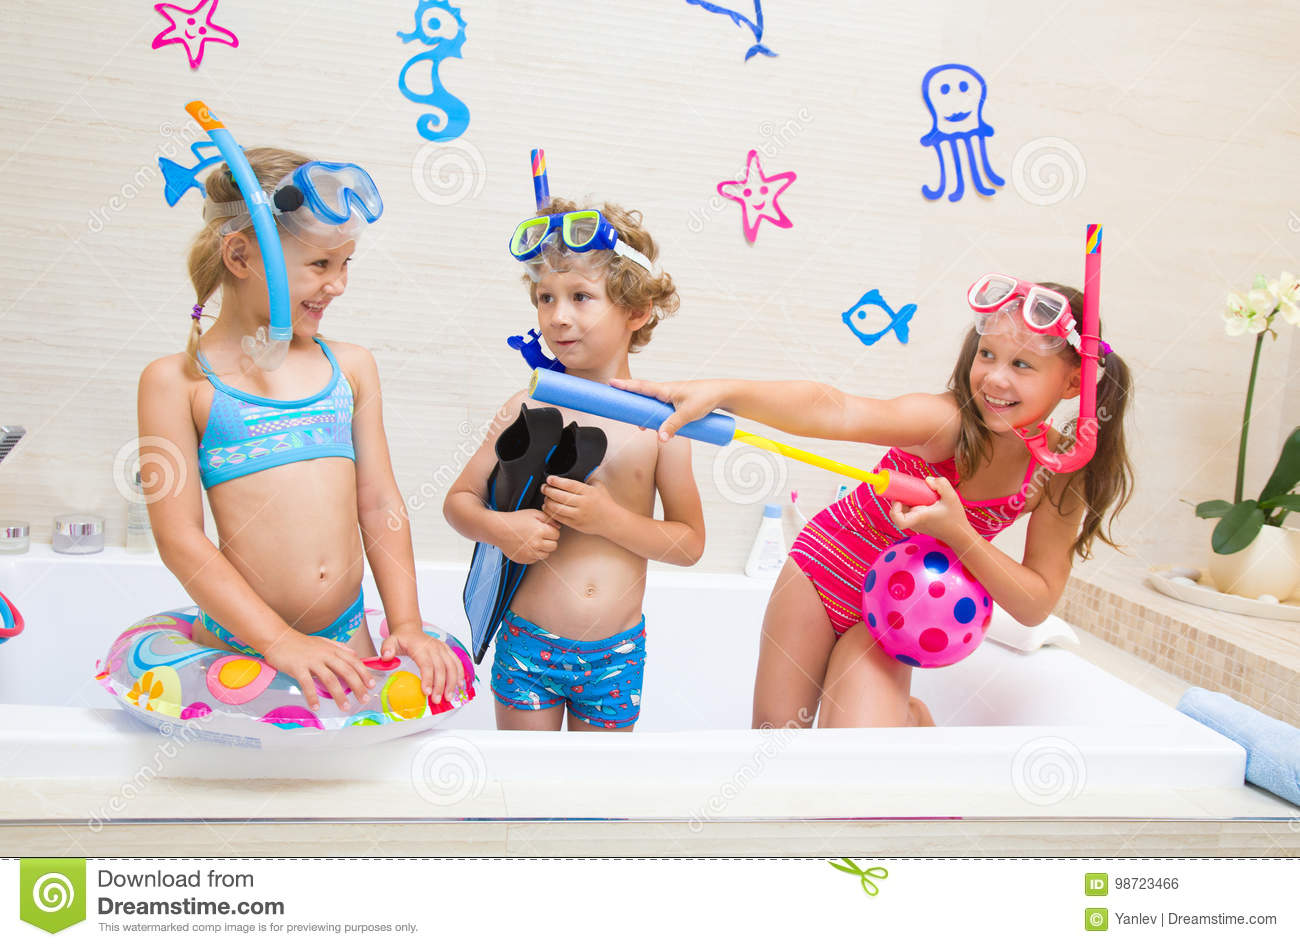 61670fff1a3d3 Children Play In The Bathroom Stock Photo - Image of fins, people ...